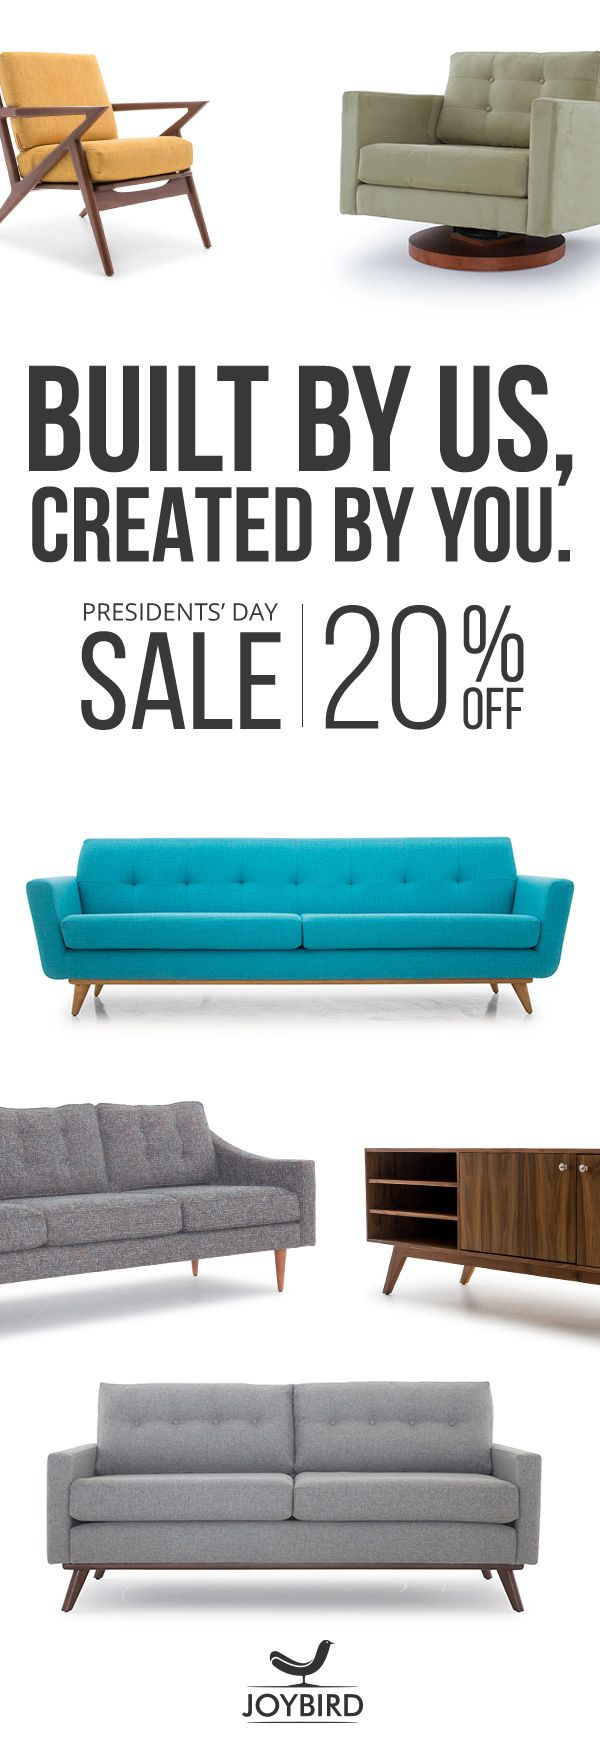 ^ 1000+ ideas about Presidents Day Furniture Sales on Pinterest ...